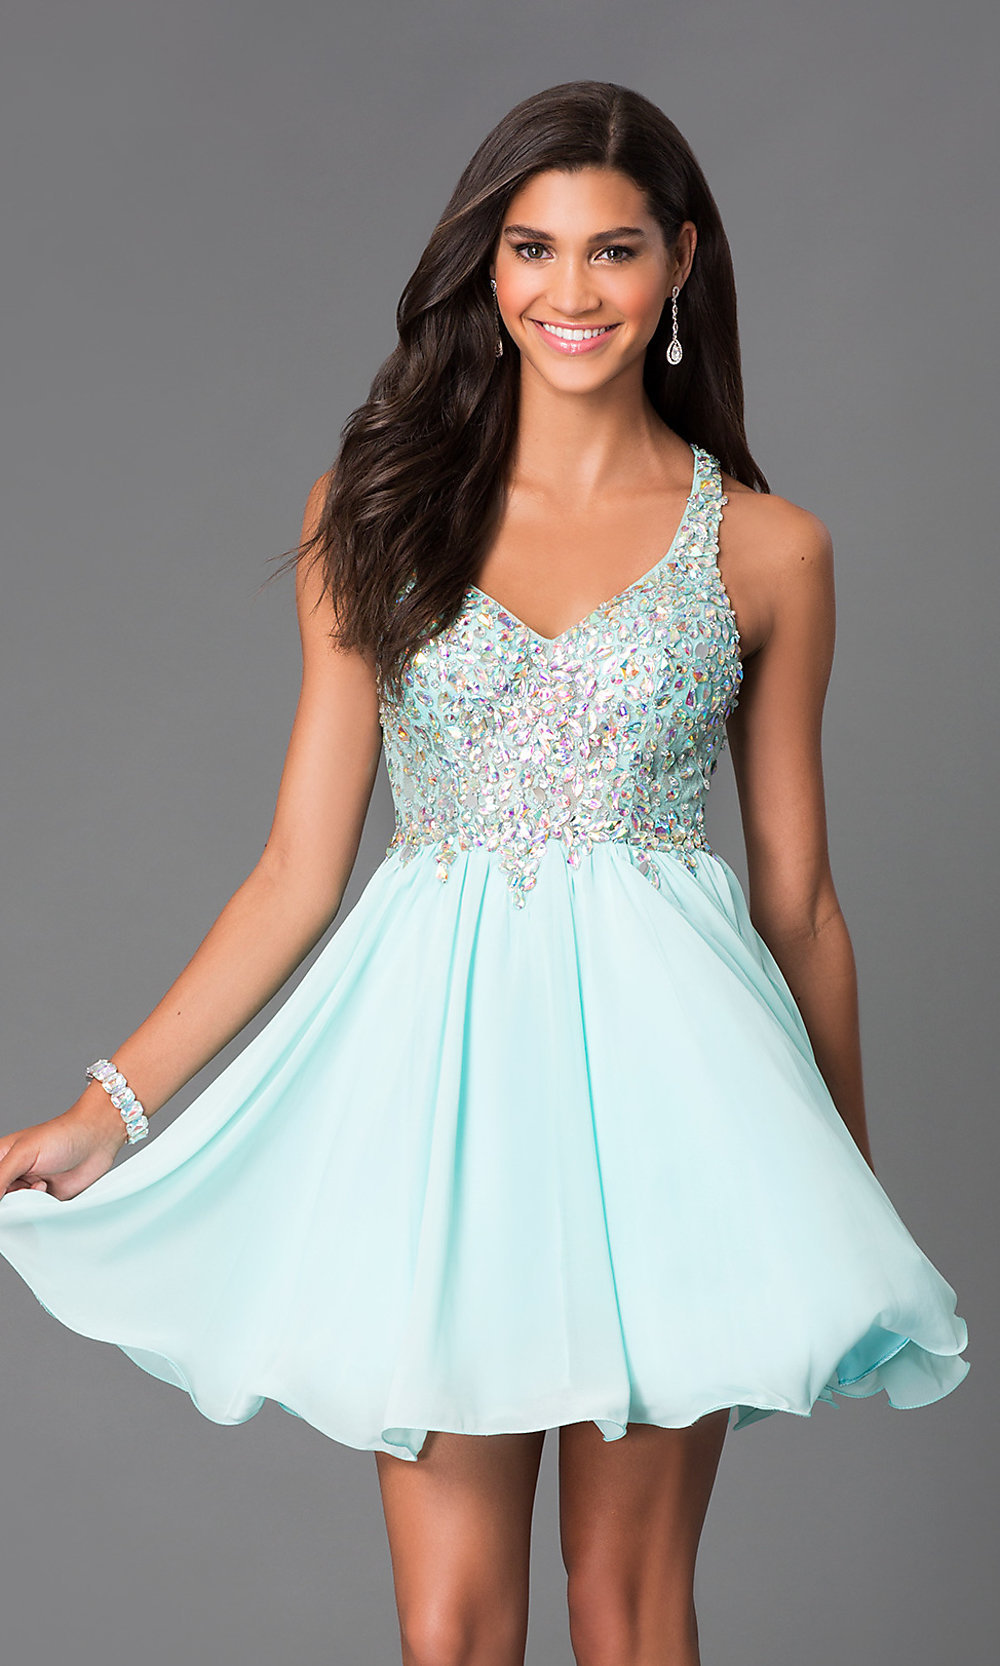 Sweetheart Strapless Prom Dresses